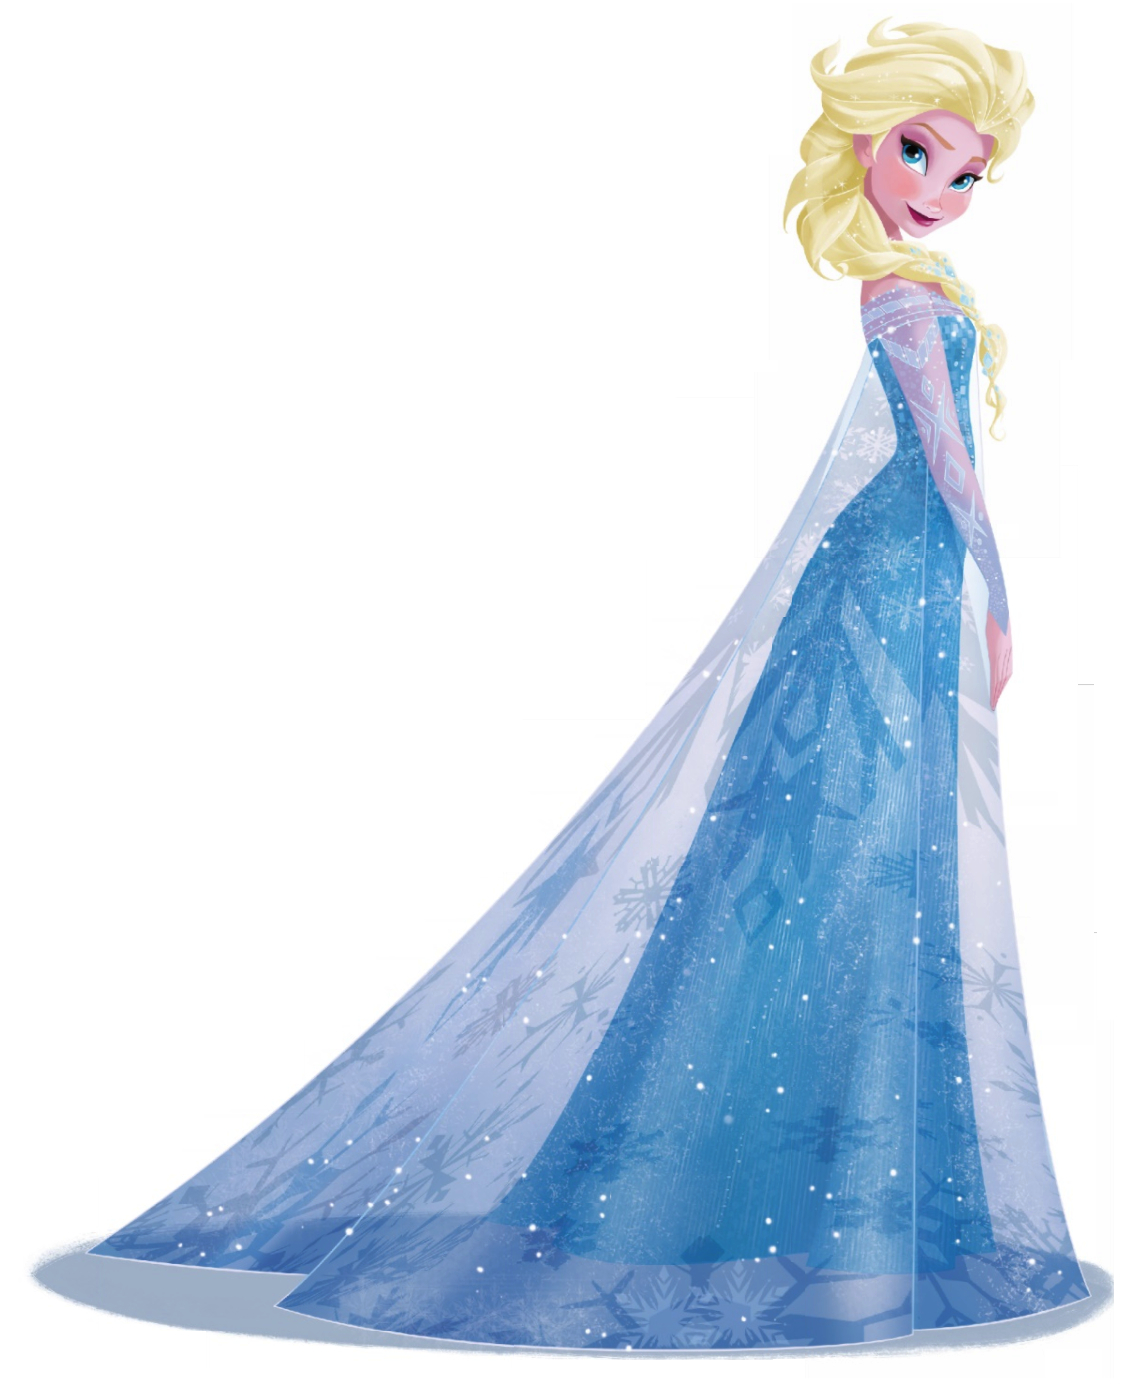 elsa face clipart - photo #36